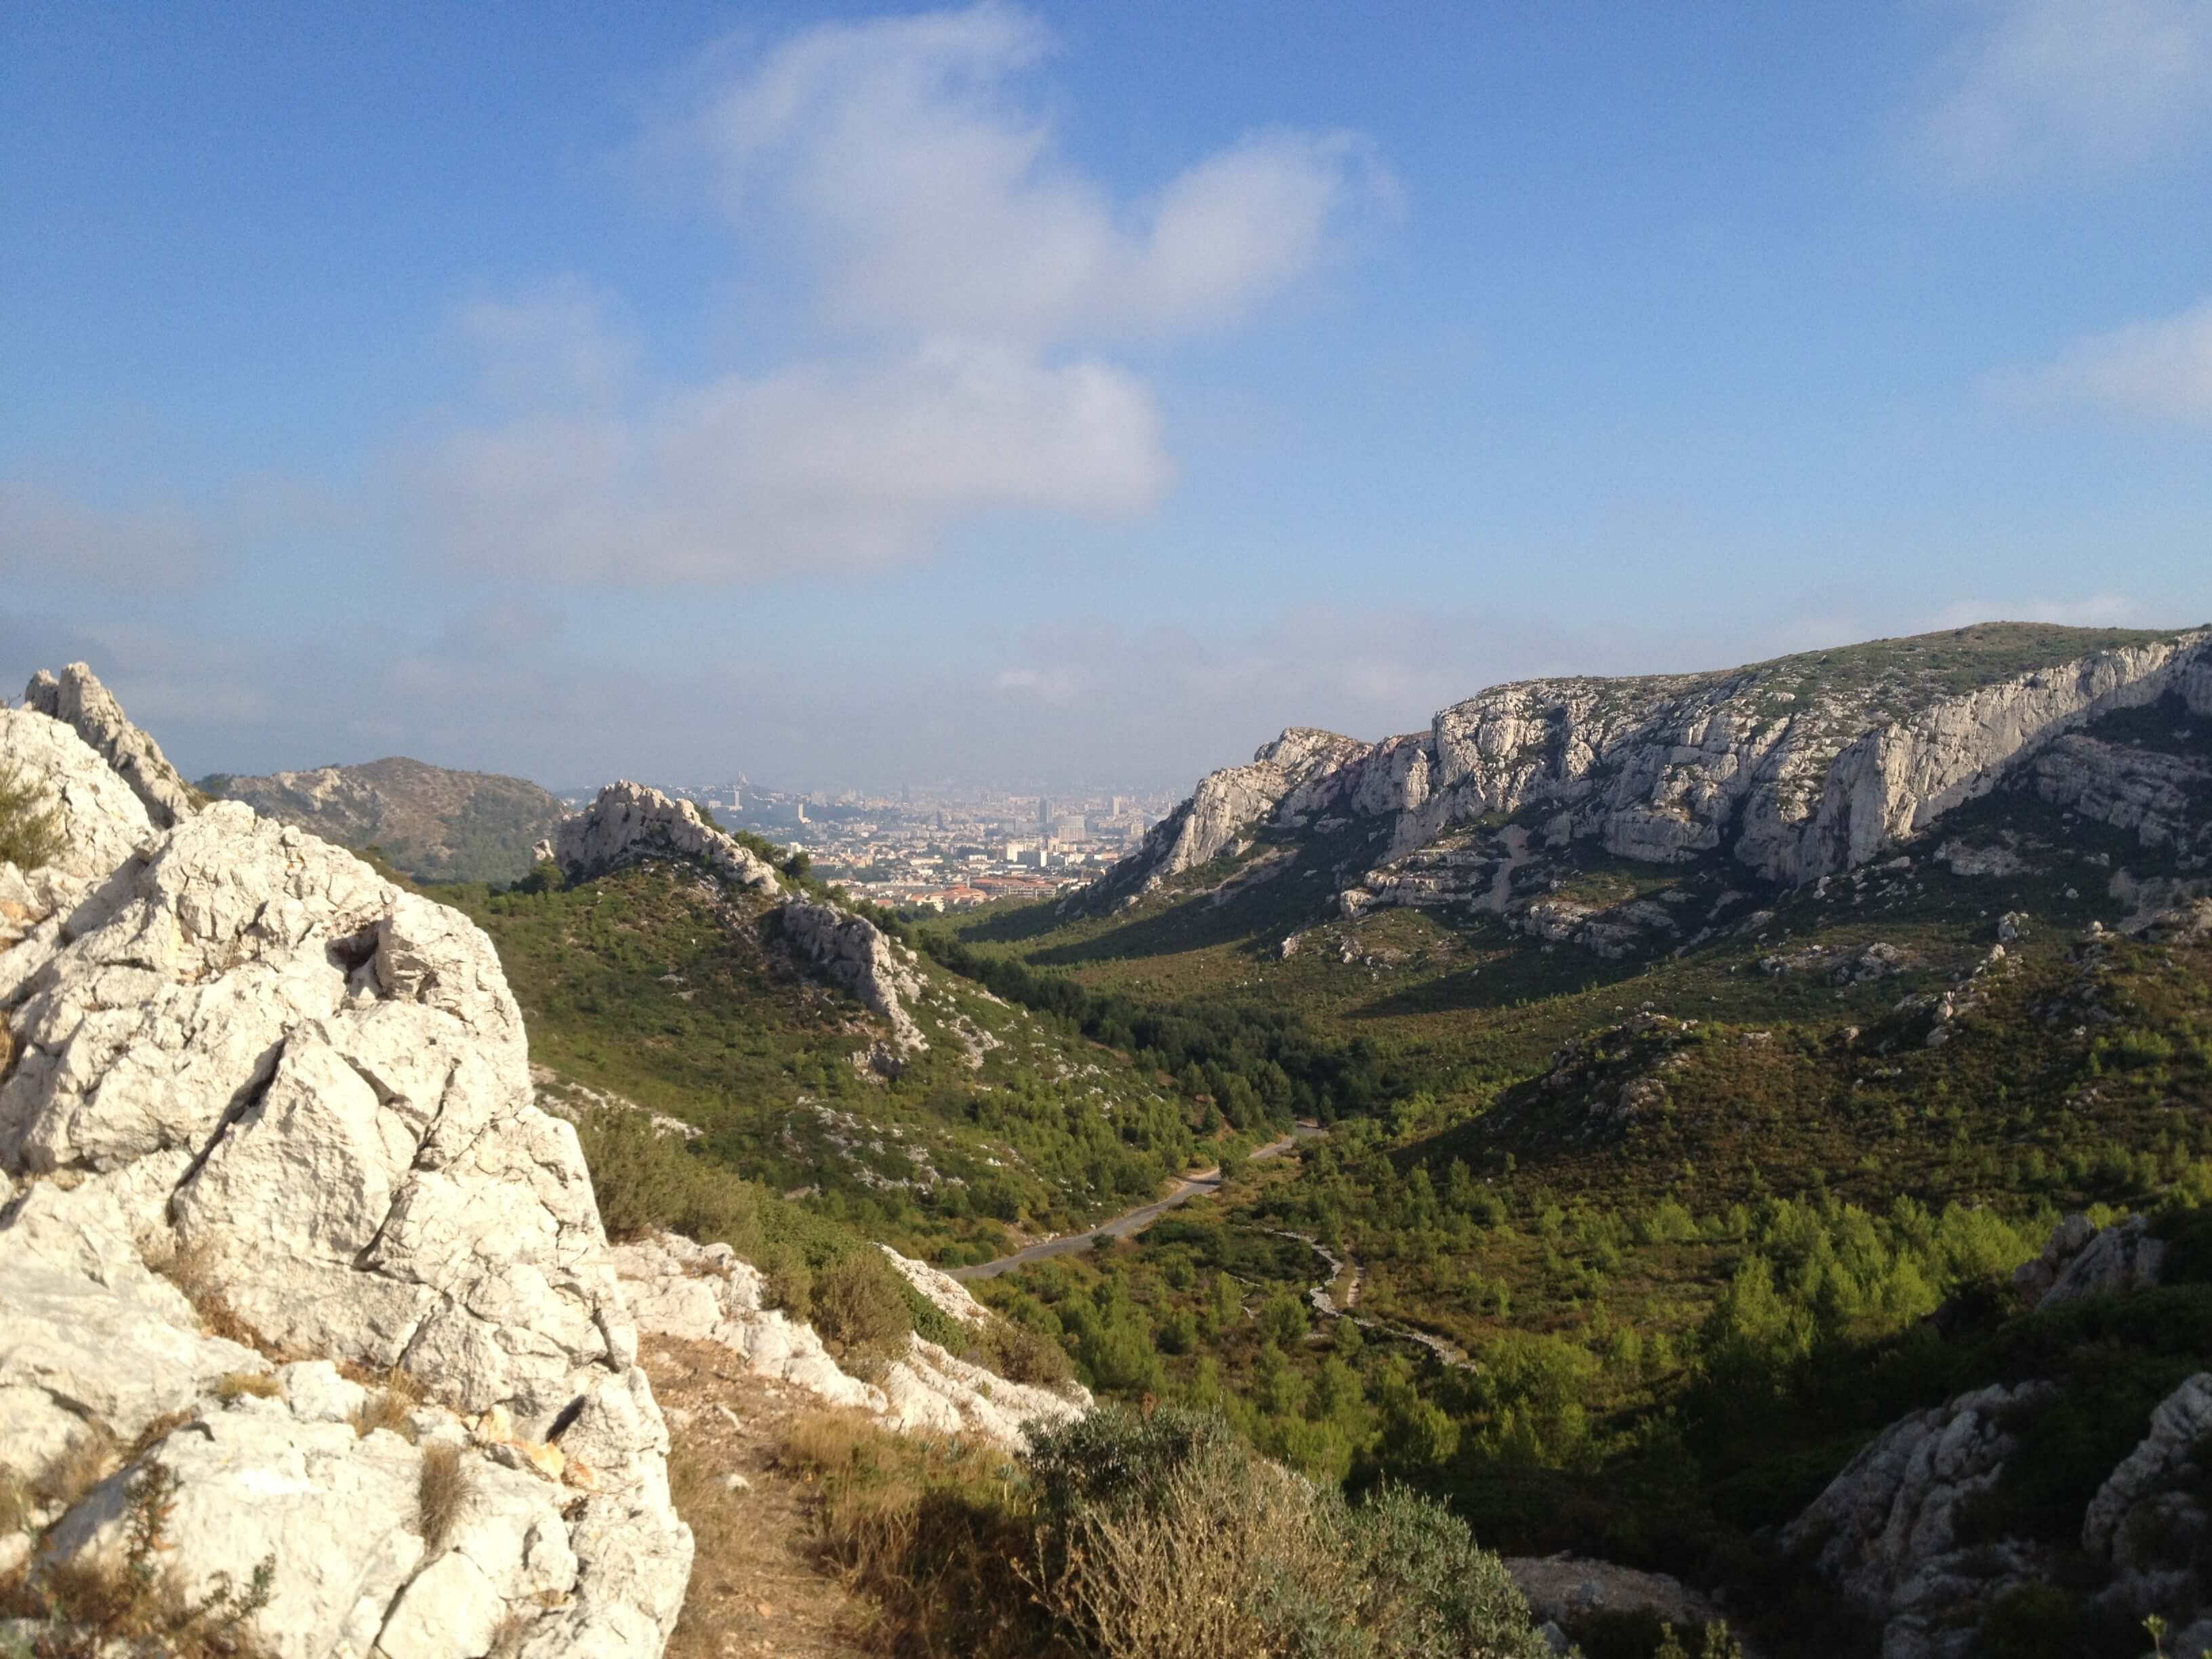 On one side... the view looking down on the climb up the mountain to Calanque de Sormiou with Marseille in the background.